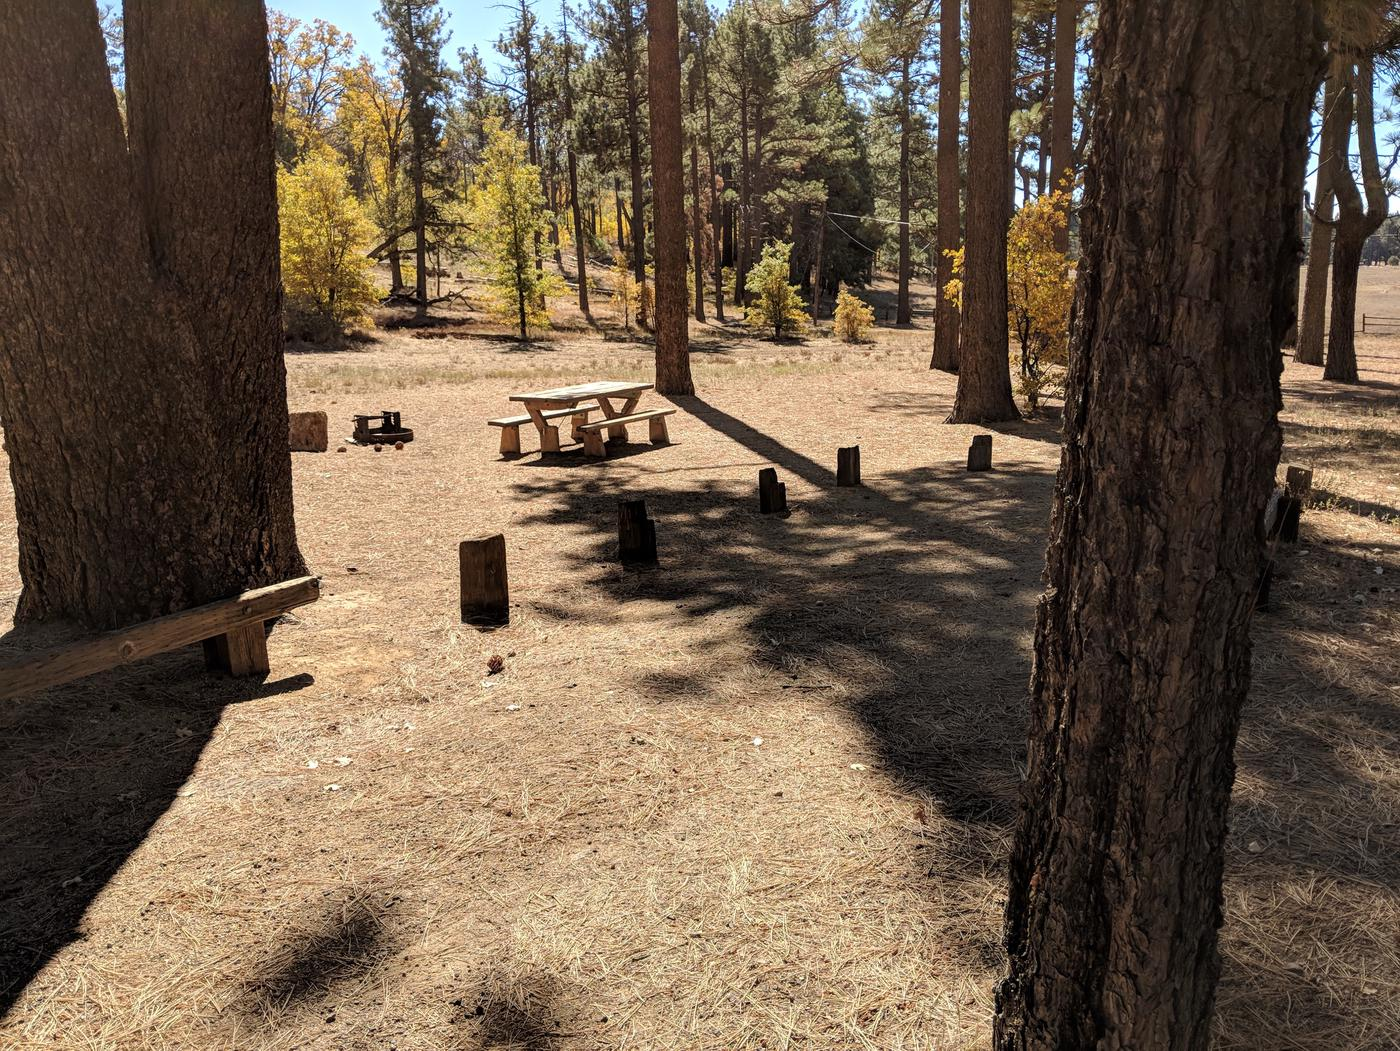 Laguna Campground site #17 wooded camping space view and picnic area.